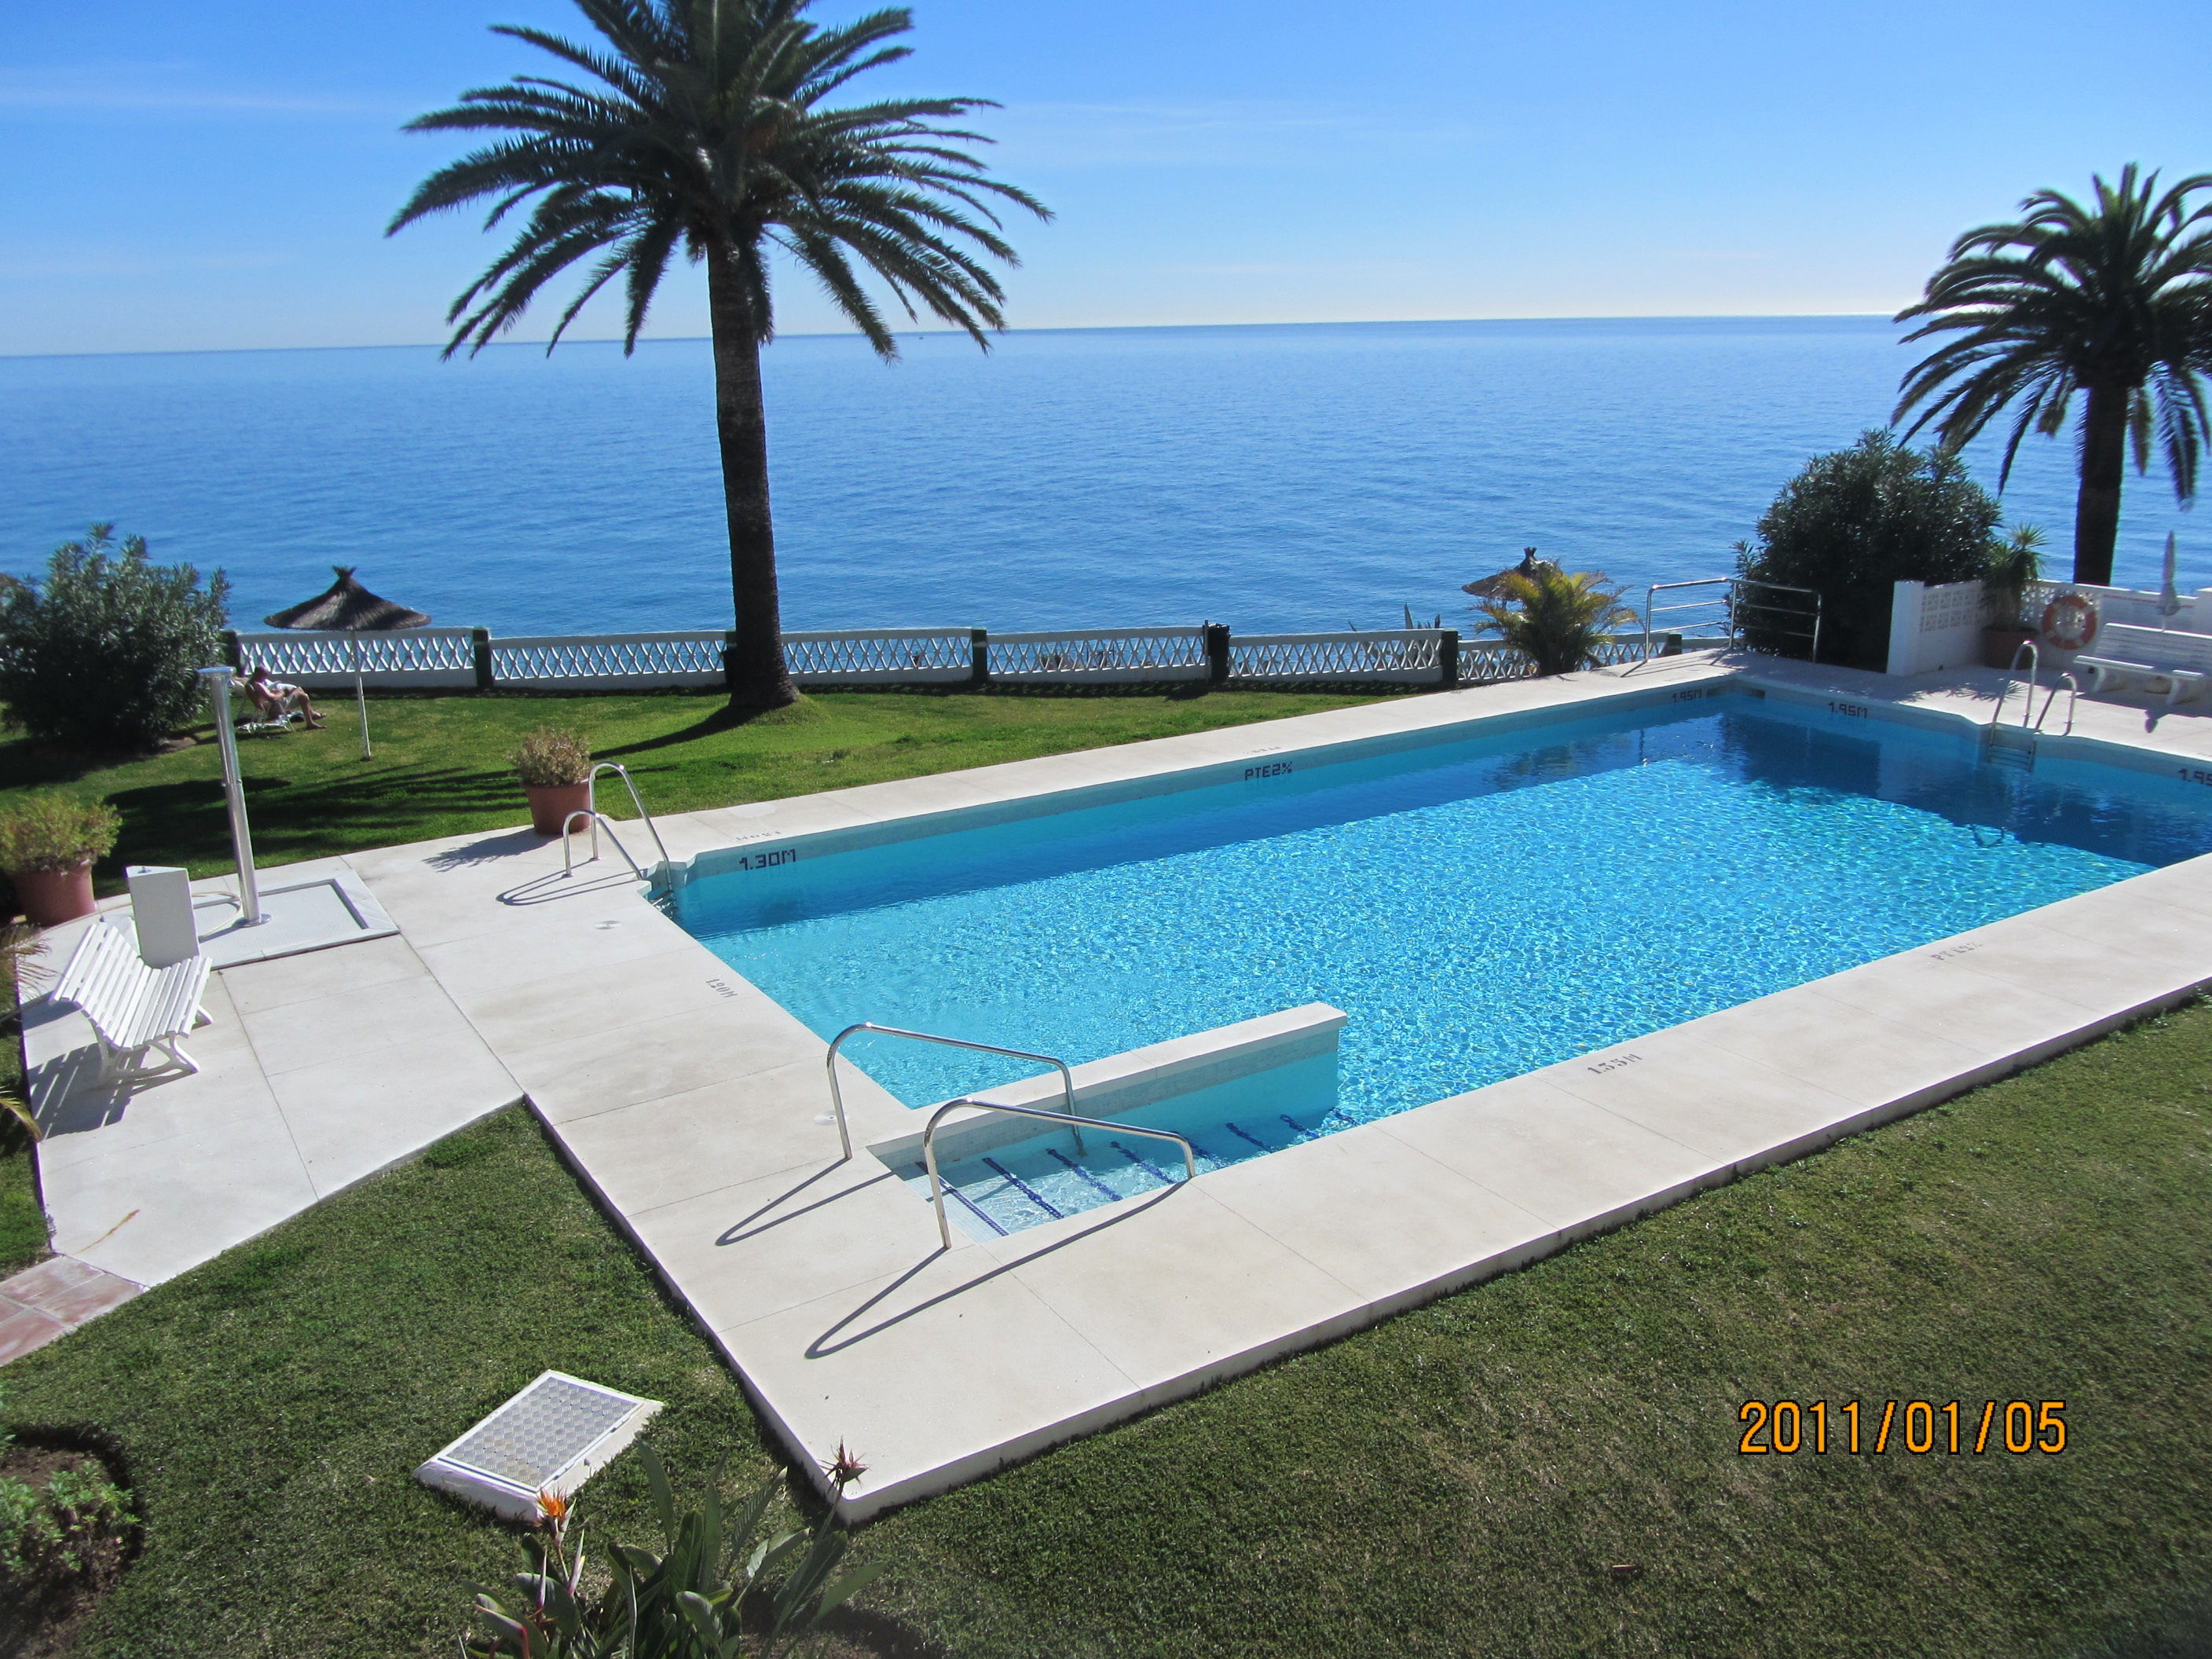 Acapulco Playa Apartment Nerja With Two Bedrooms In Nerja Town With  Stunning Views Overlooking Beach And Balcon De Europa ,Nerja Costa Del Sol